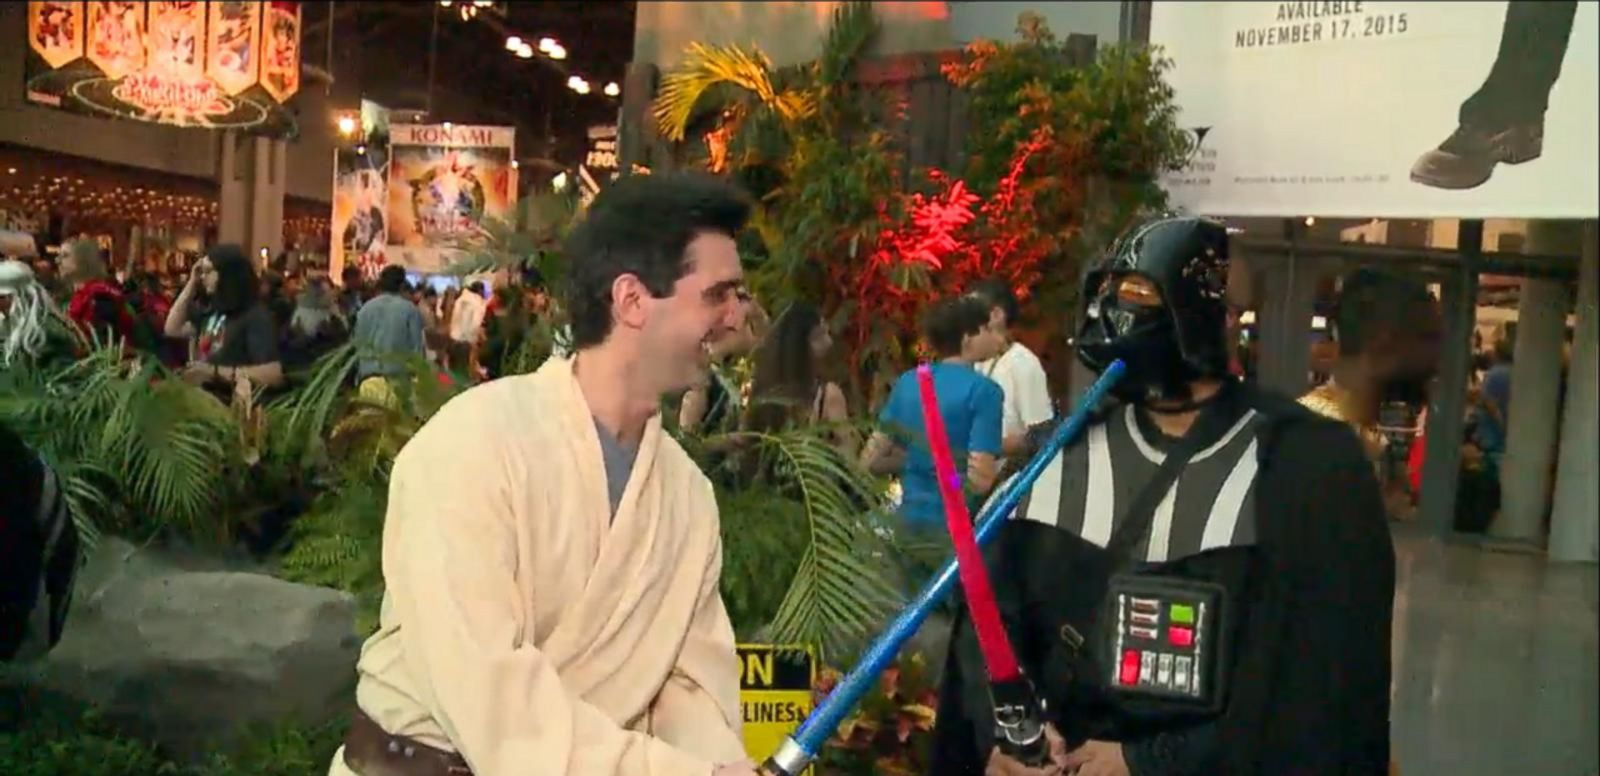 VIDEO: New York Comic Con 2015.